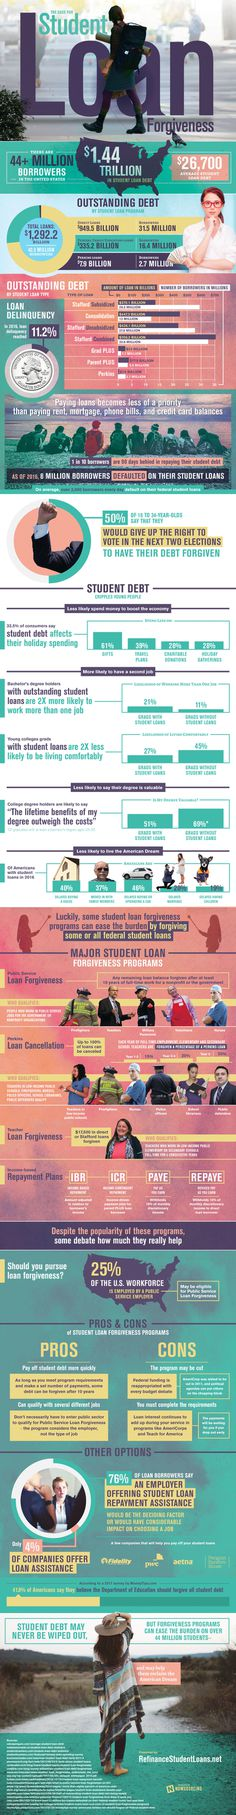 The Case for Student Loan Forgiveness – Refinance Student Loans